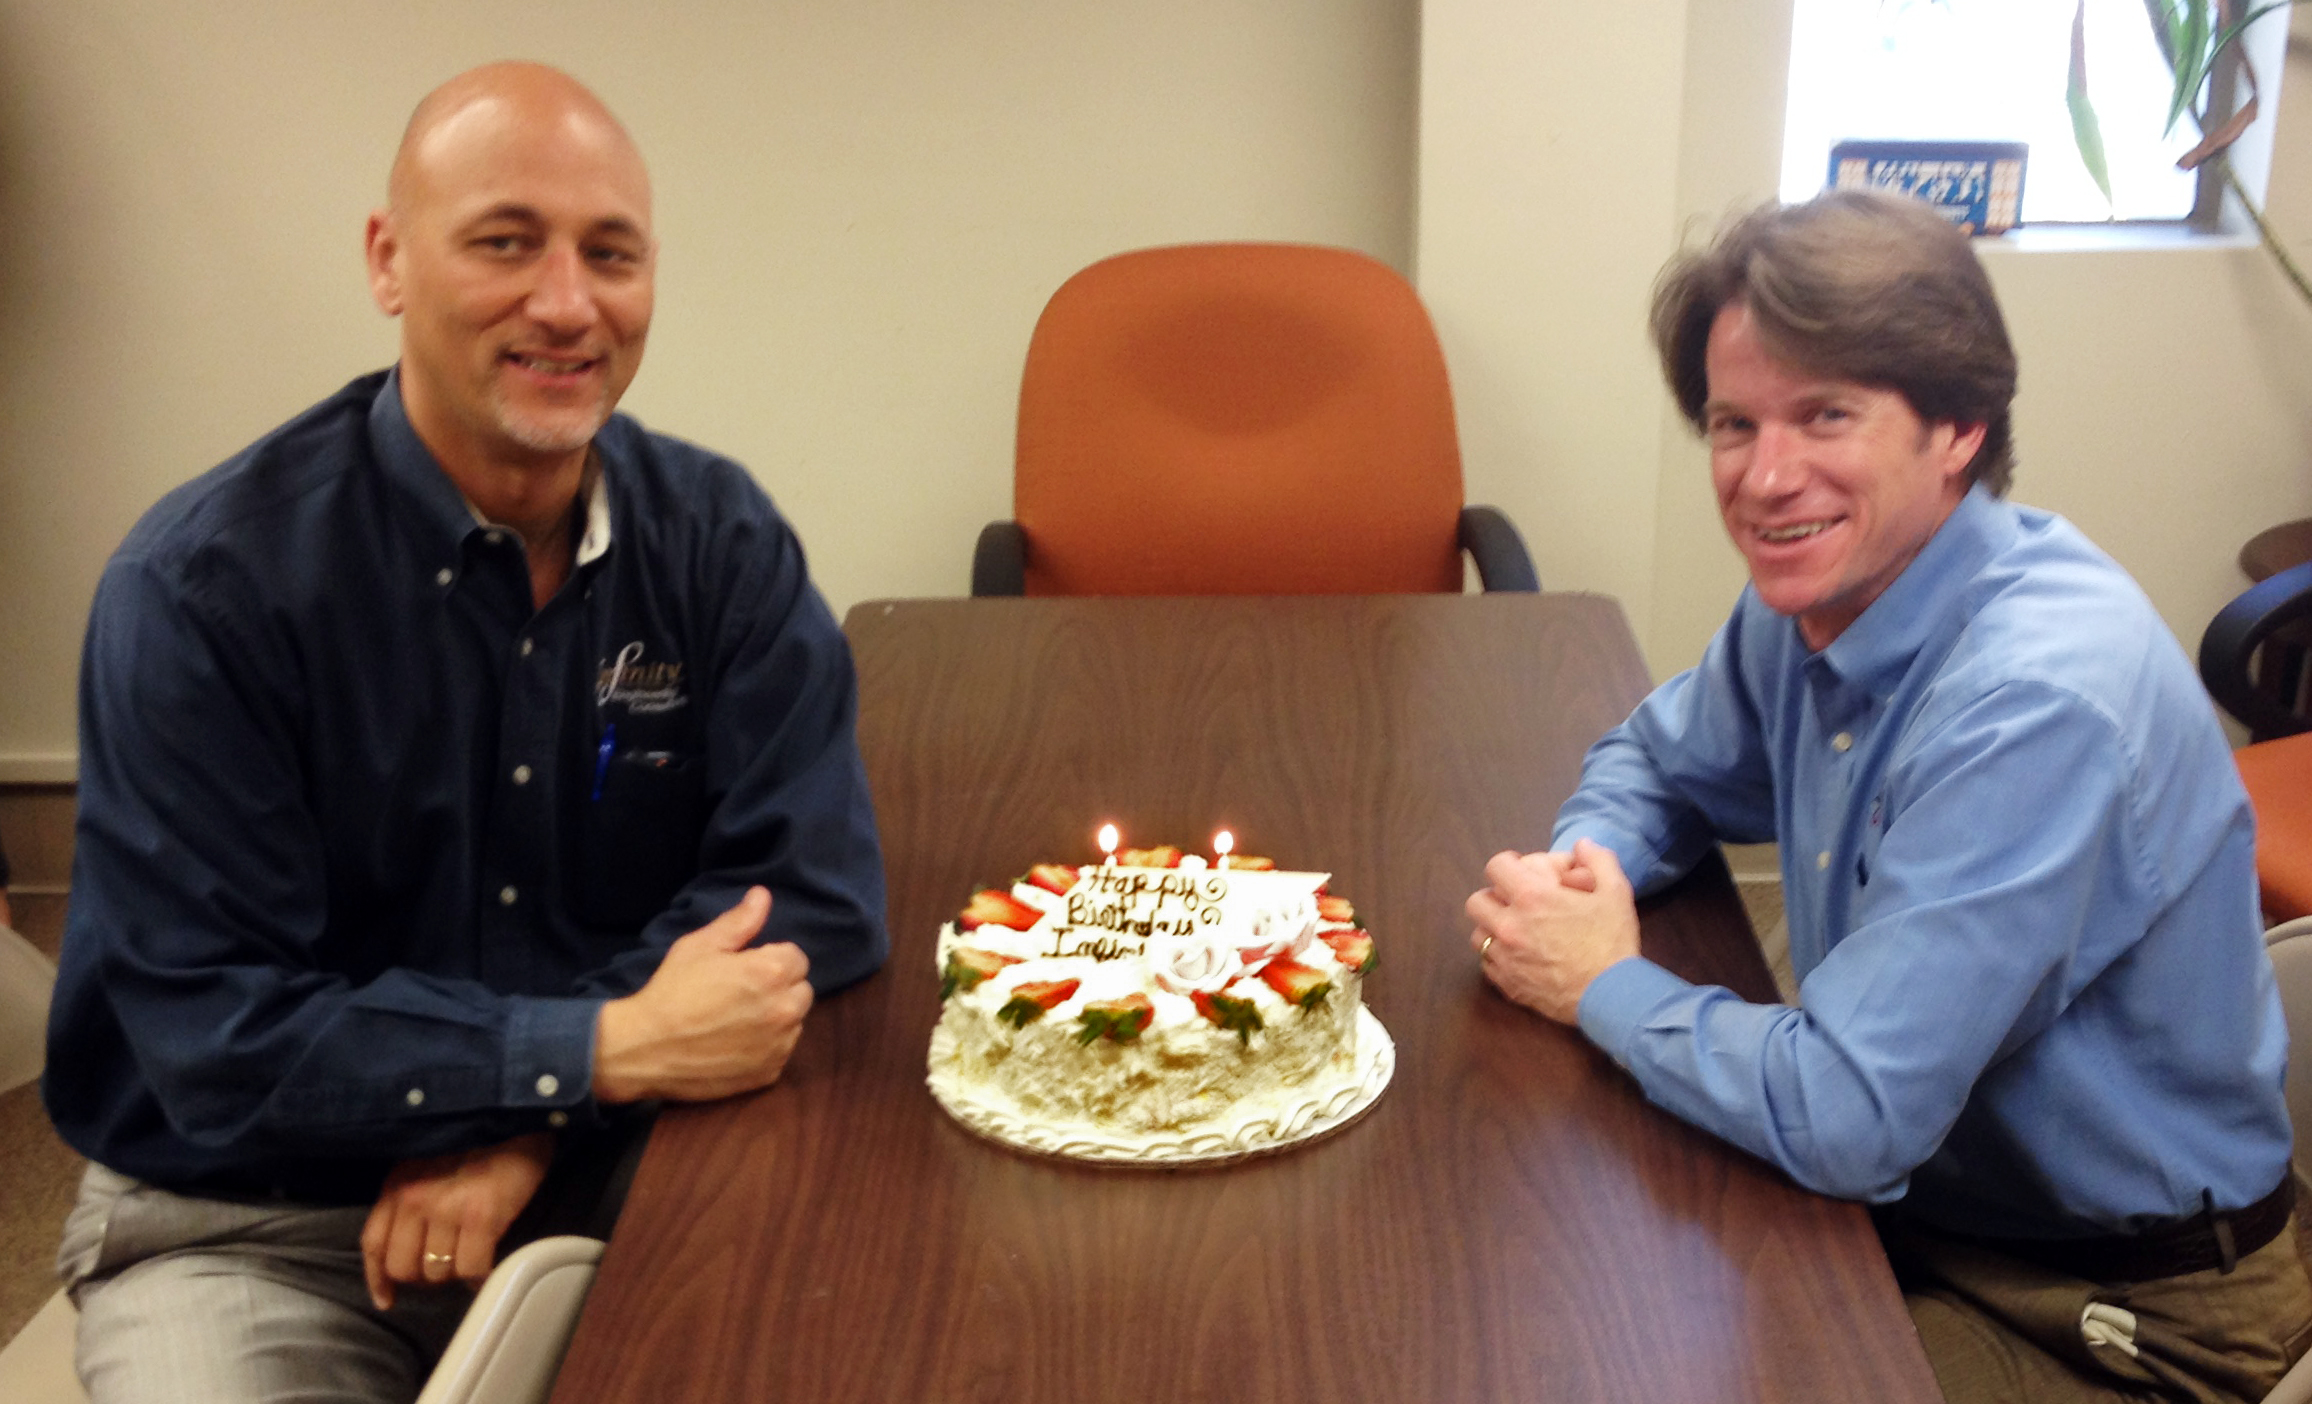 Principal Parnters Raoul Chauvin, left, and Bill Thomassie celebrate Infinity Engineering Consultants' 11th anniversary on March 4, 2015.